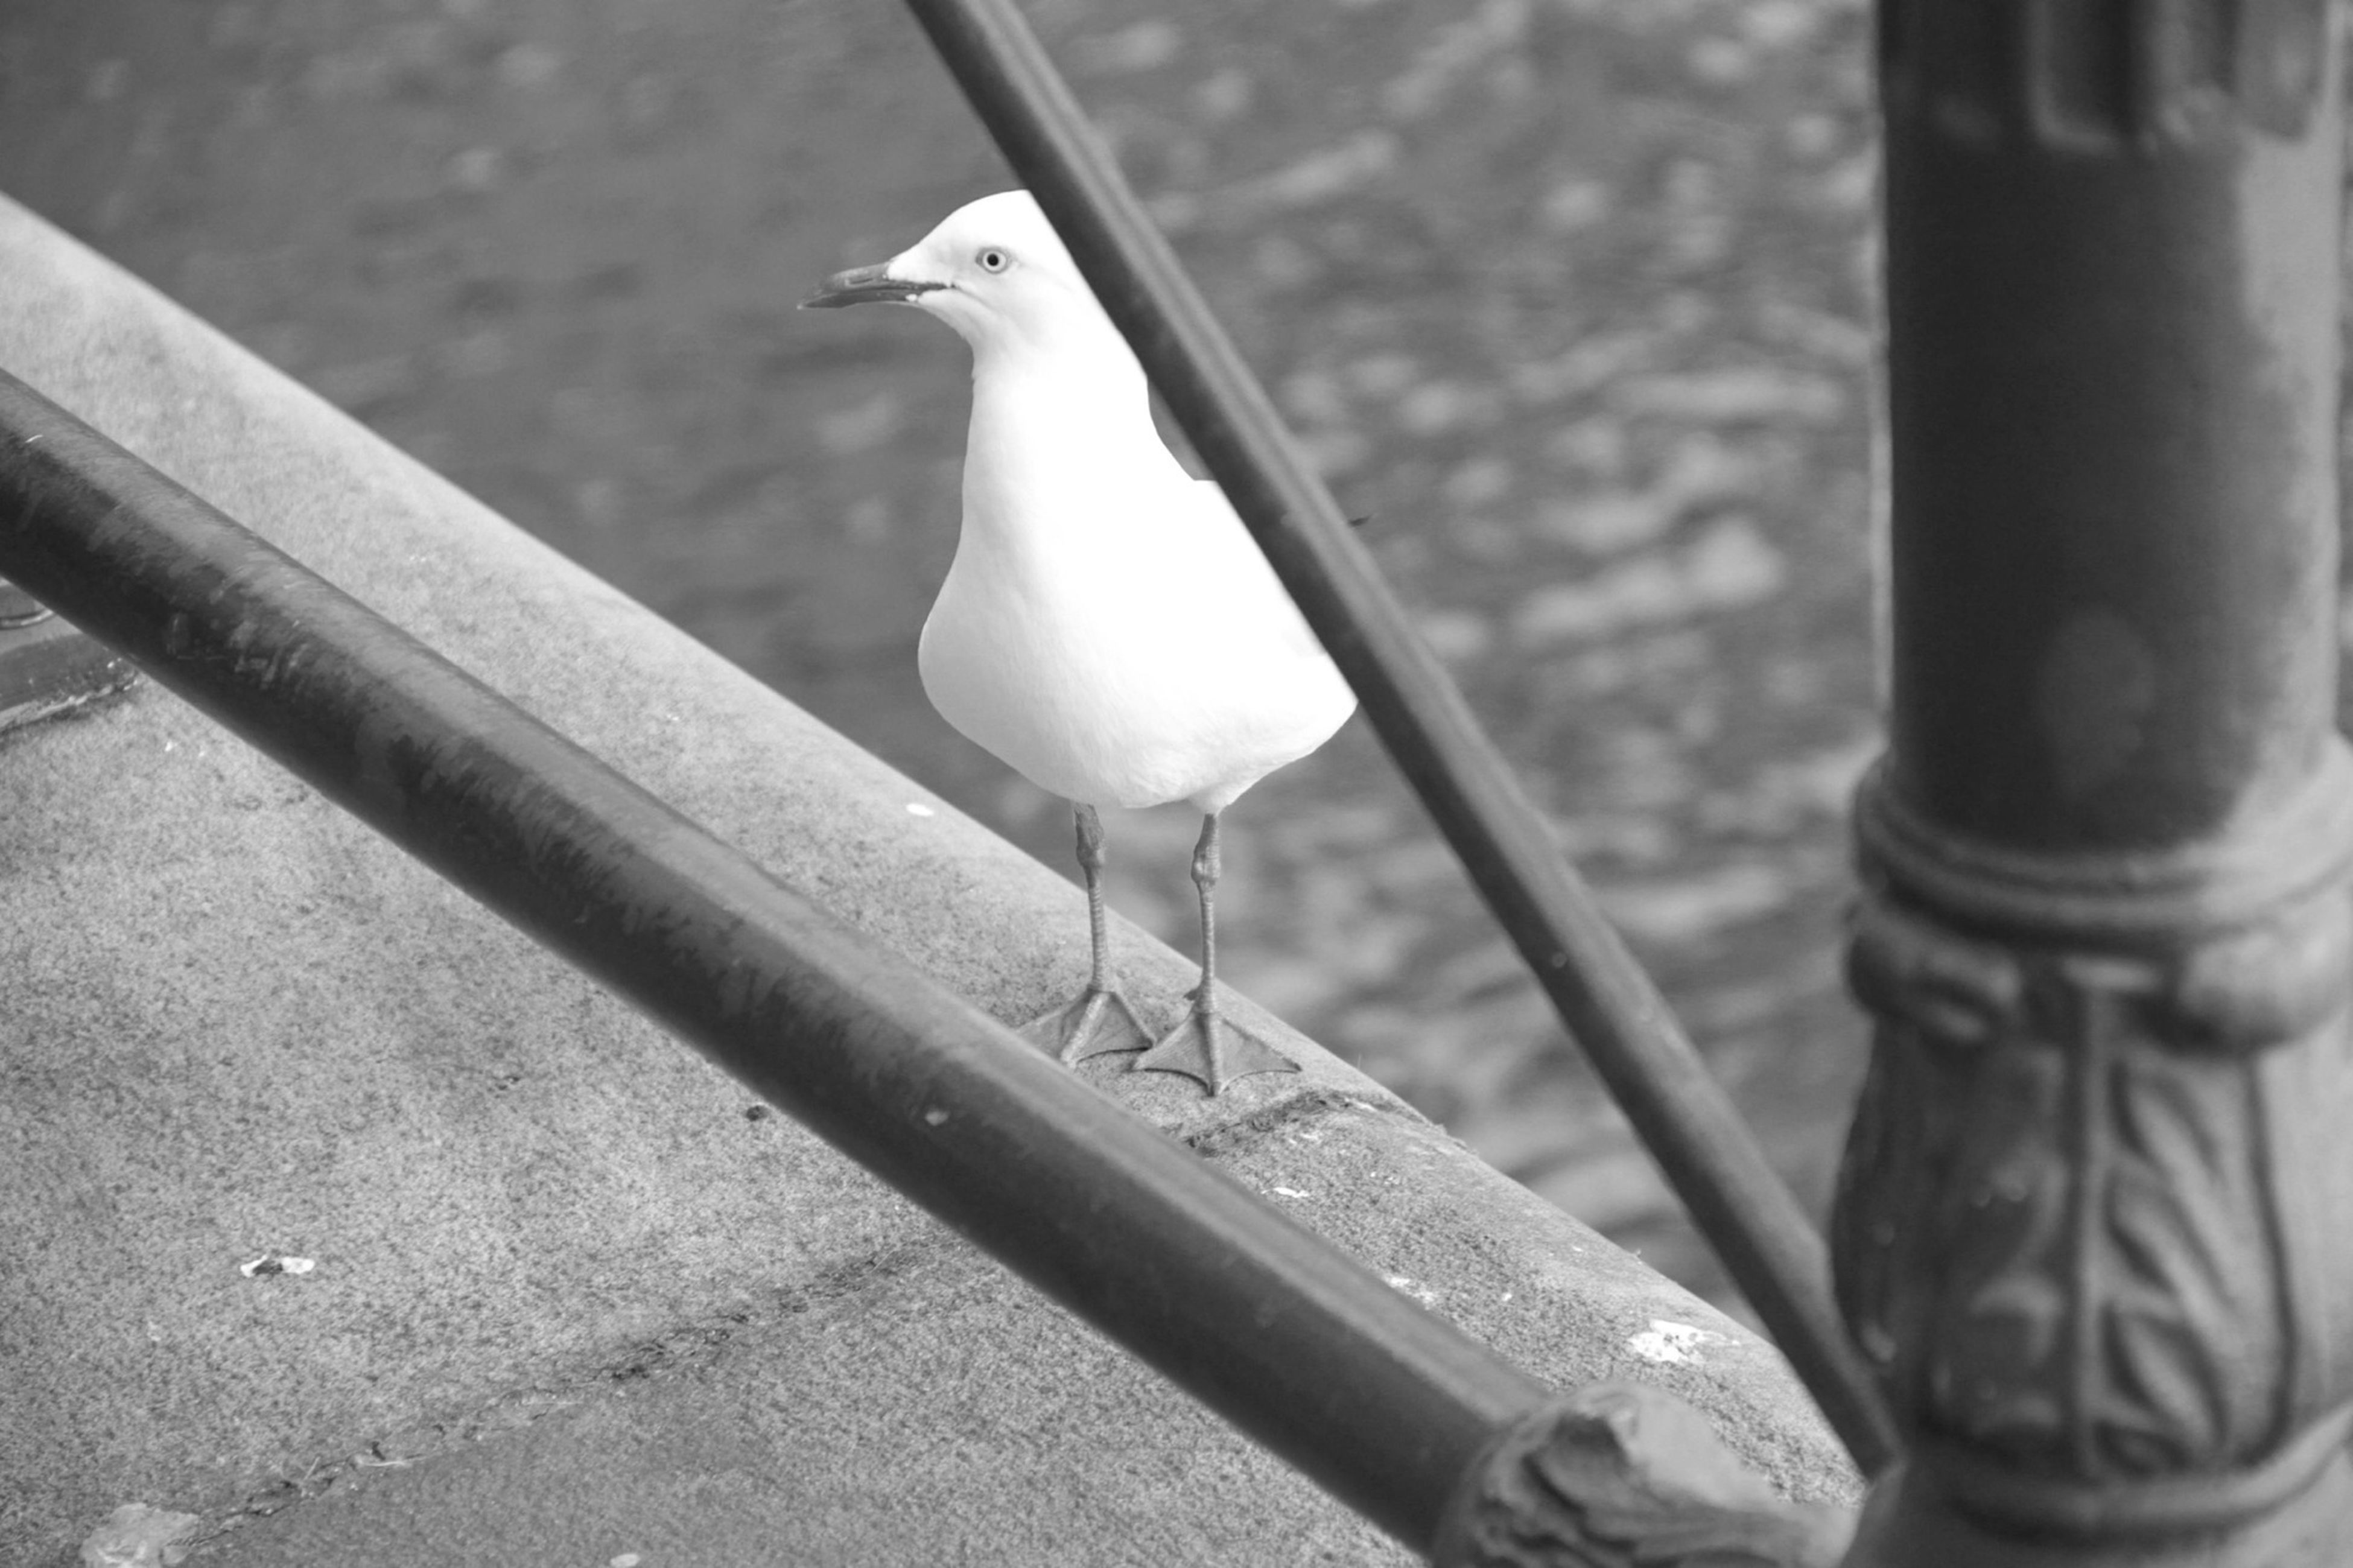 bird, animal themes, animals in the wild, wildlife, one animal, perching, seagull, pigeon, railing, focus on foreground, full length, metal, outdoors, day, close-up, beak, avian, spread wings, two animals, zoology